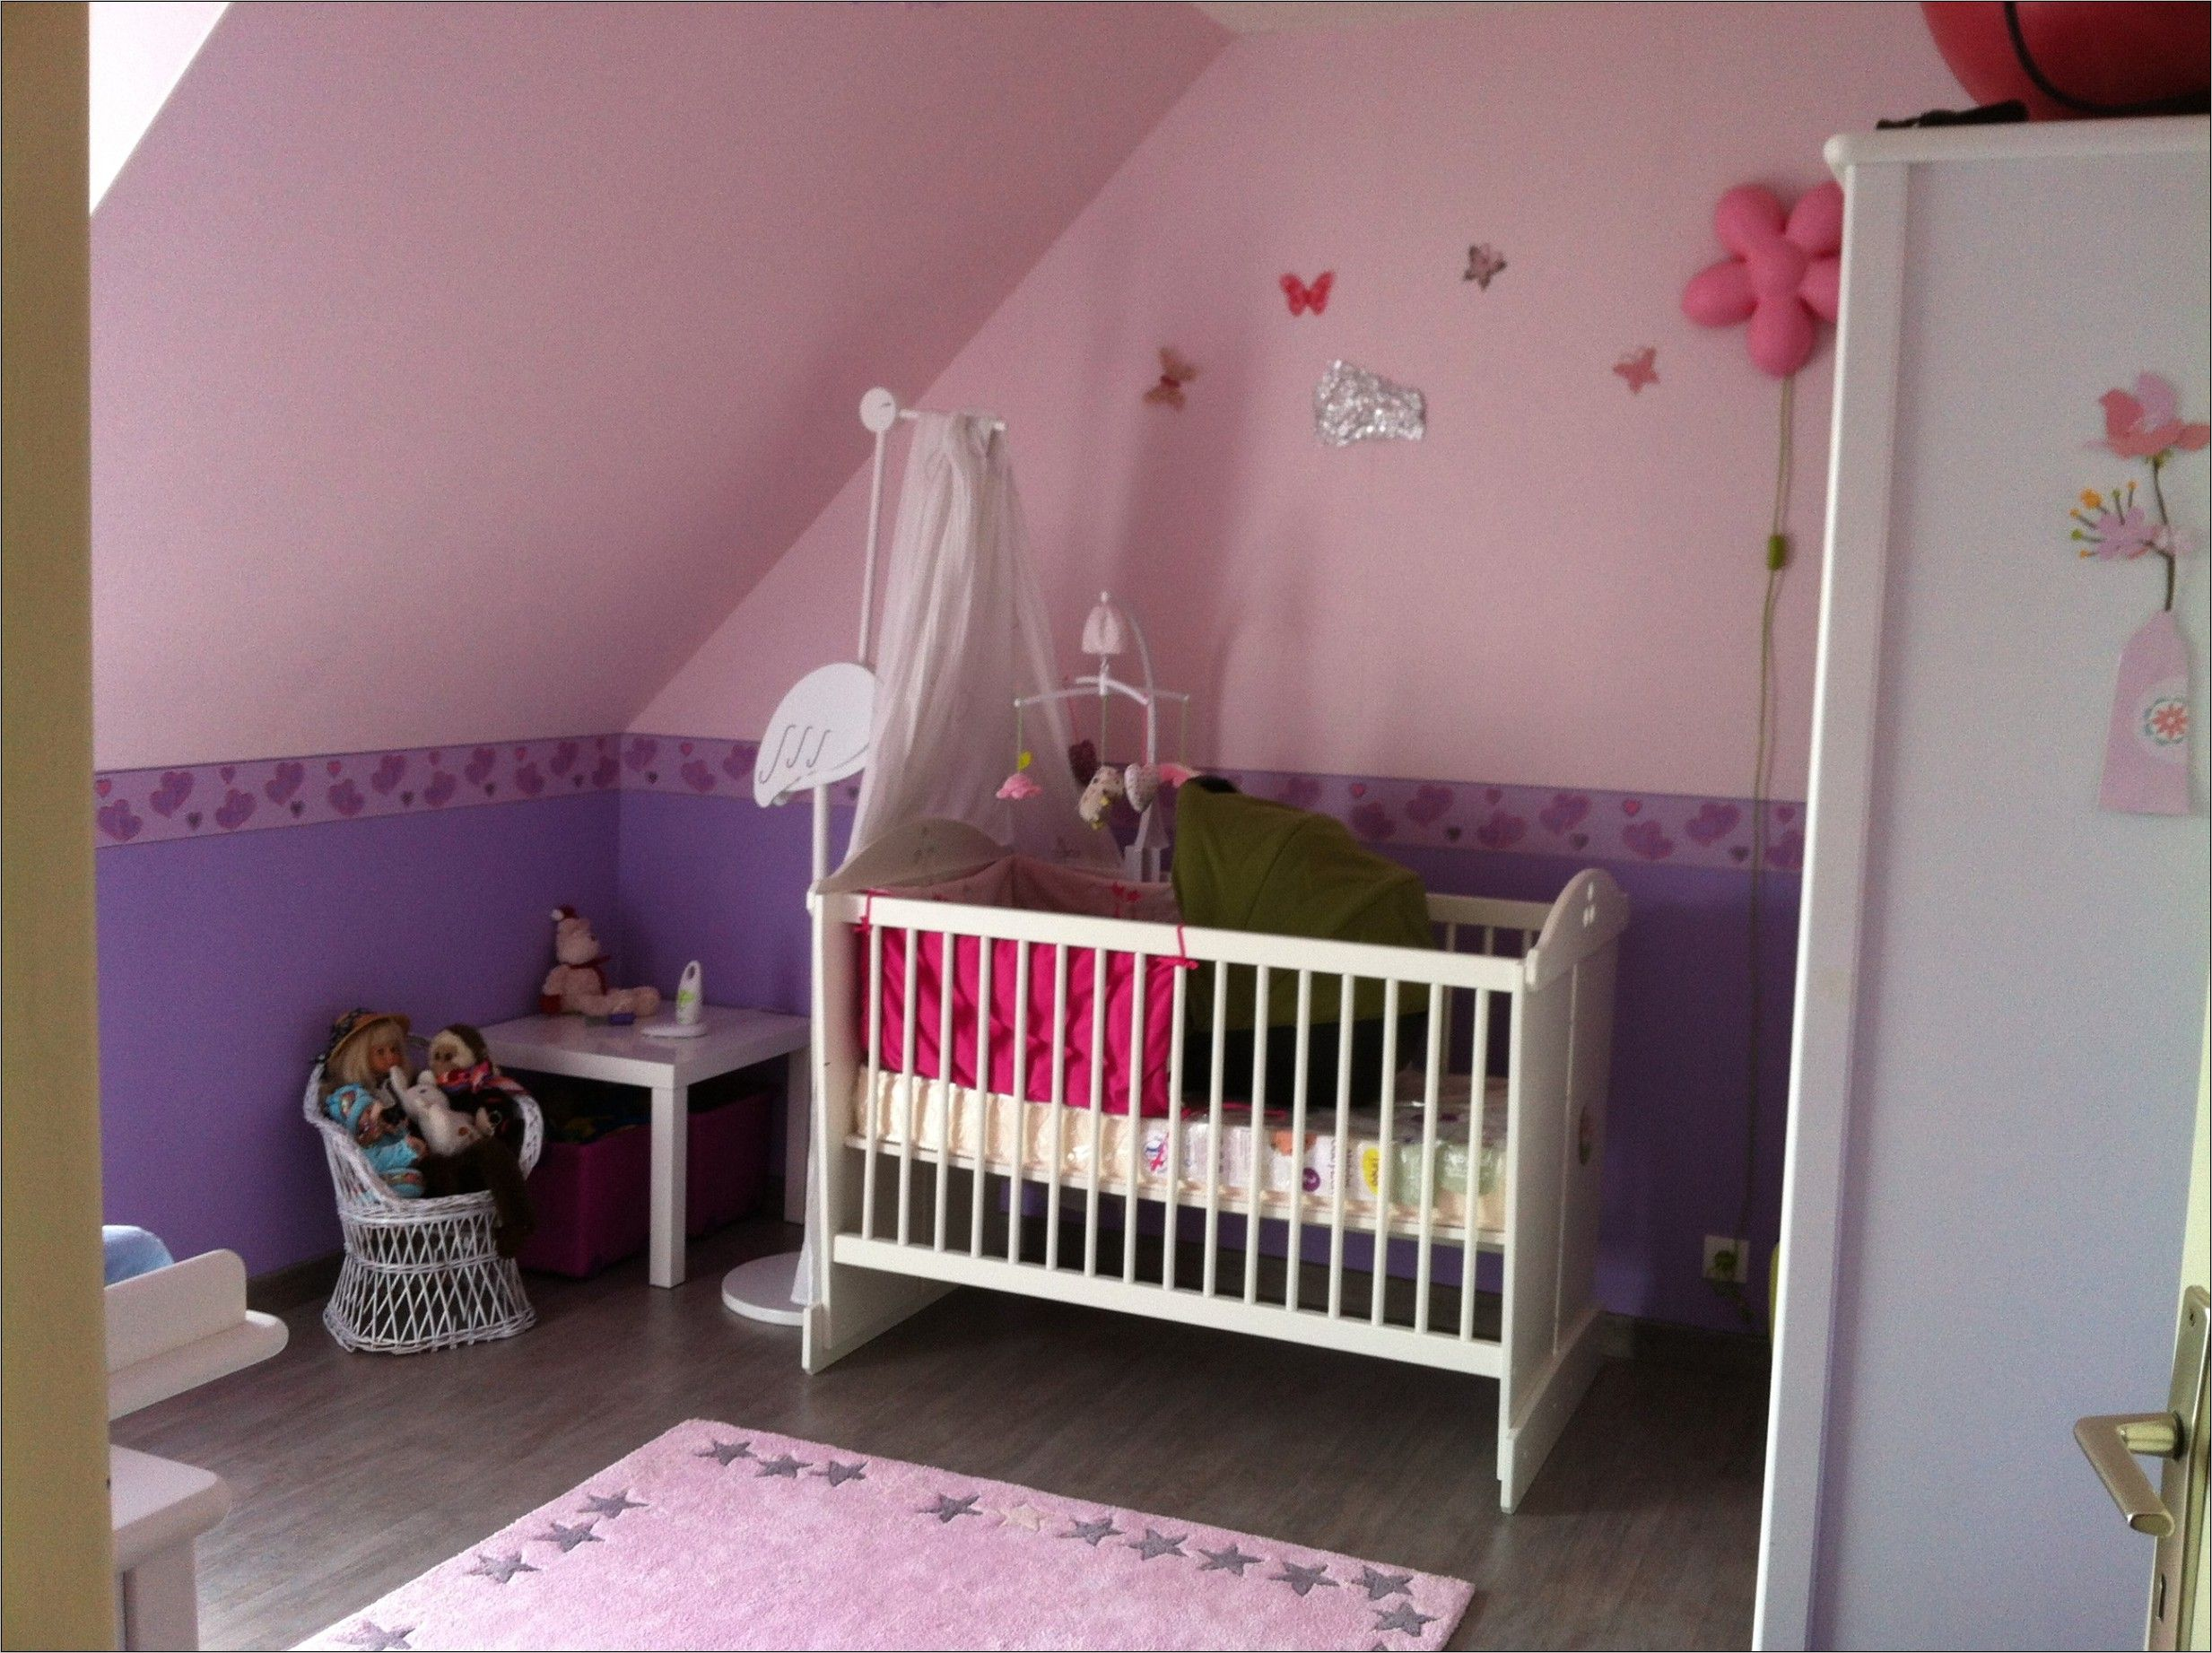 Idee Deco Chambre Bebe Fille Gris Et Rose Idee Deco Chambre Bebe